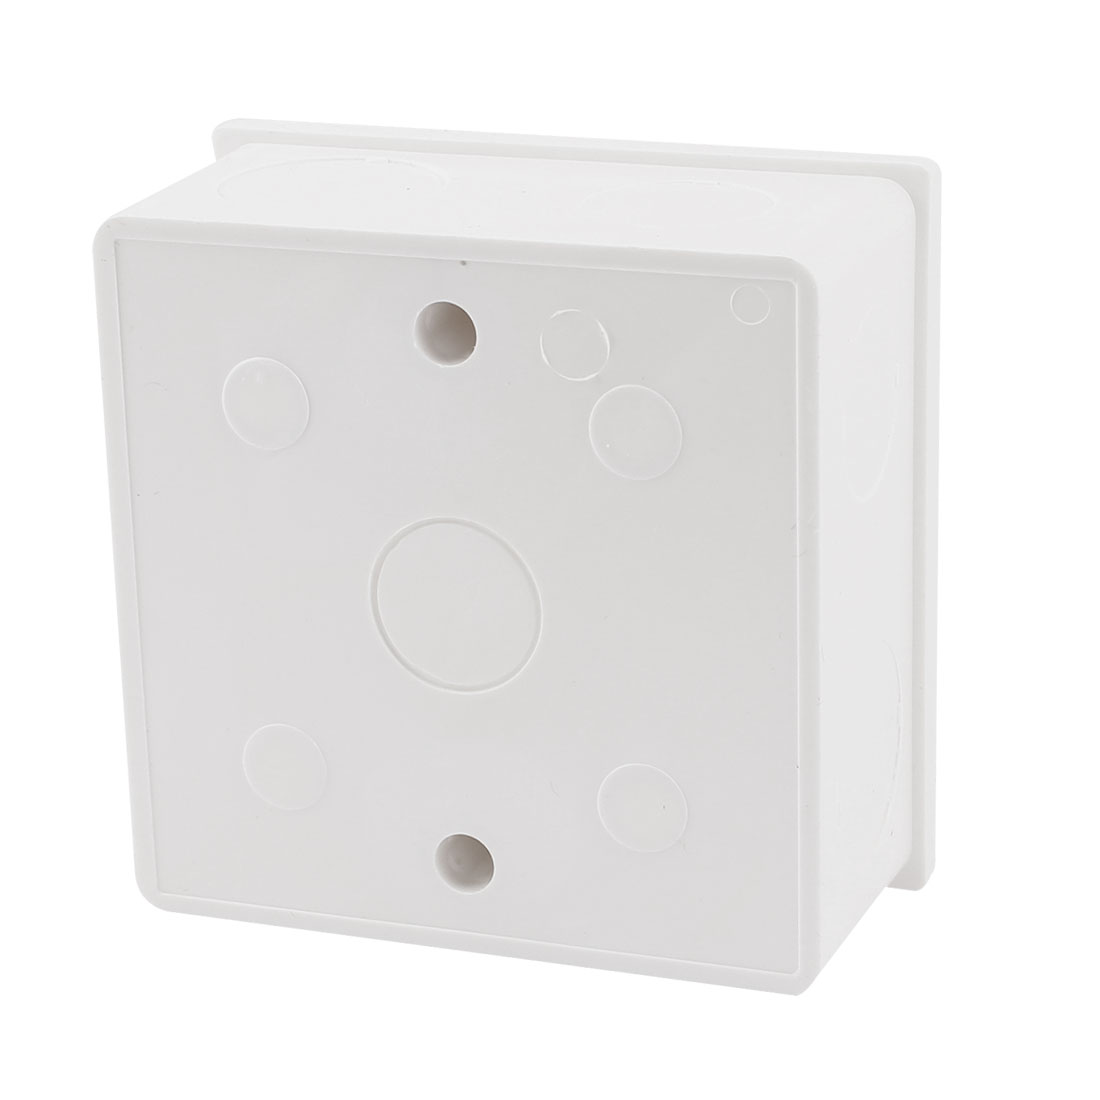 86mmx86mmx40mm White PVC Single Gang Mount Back Box for Wall Socket